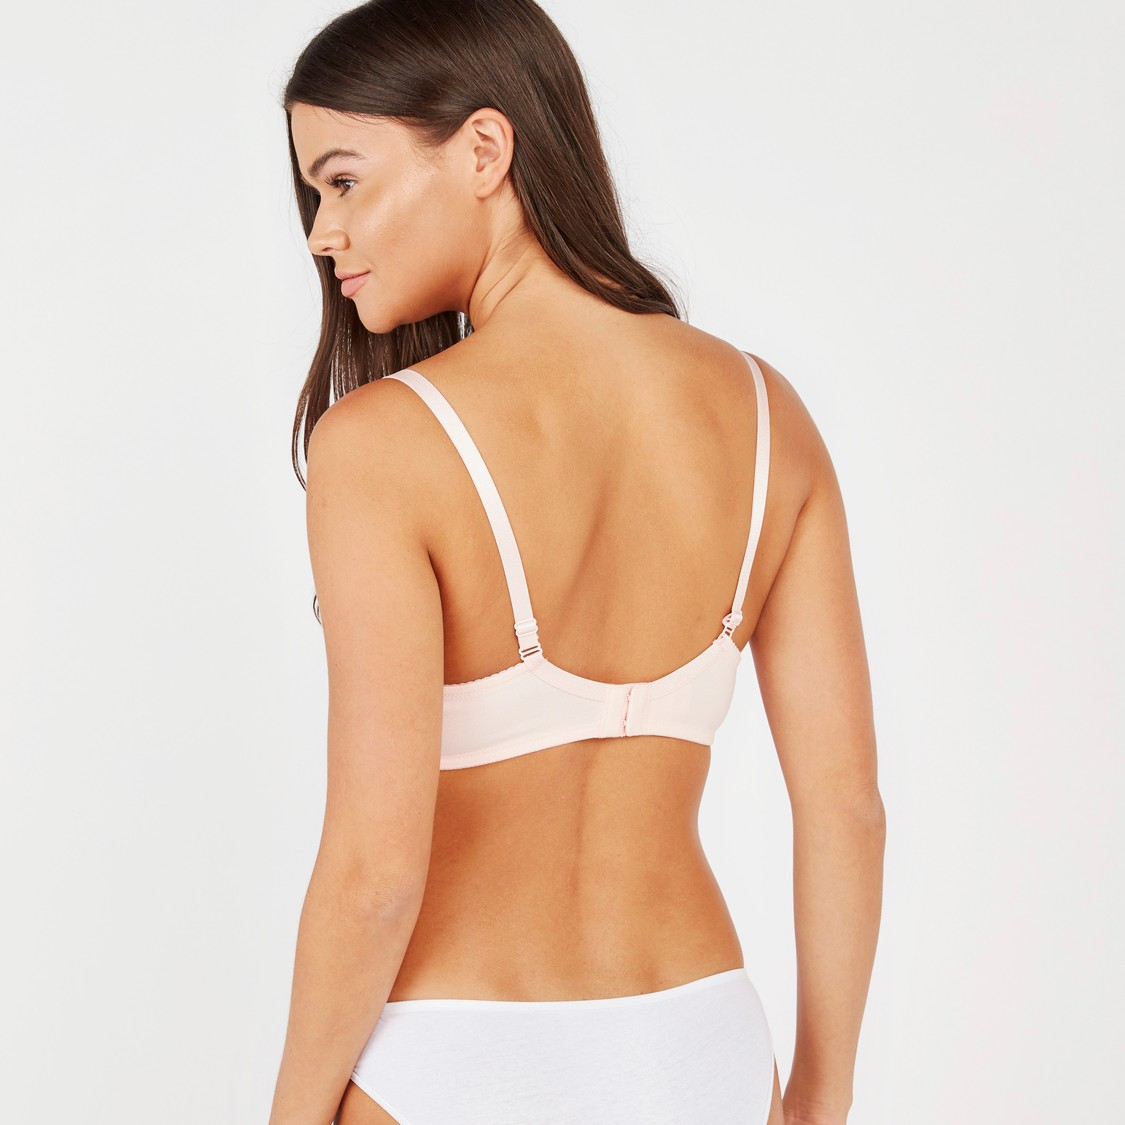 Lace Detail Maternity Bra with Hook and Eye Closure